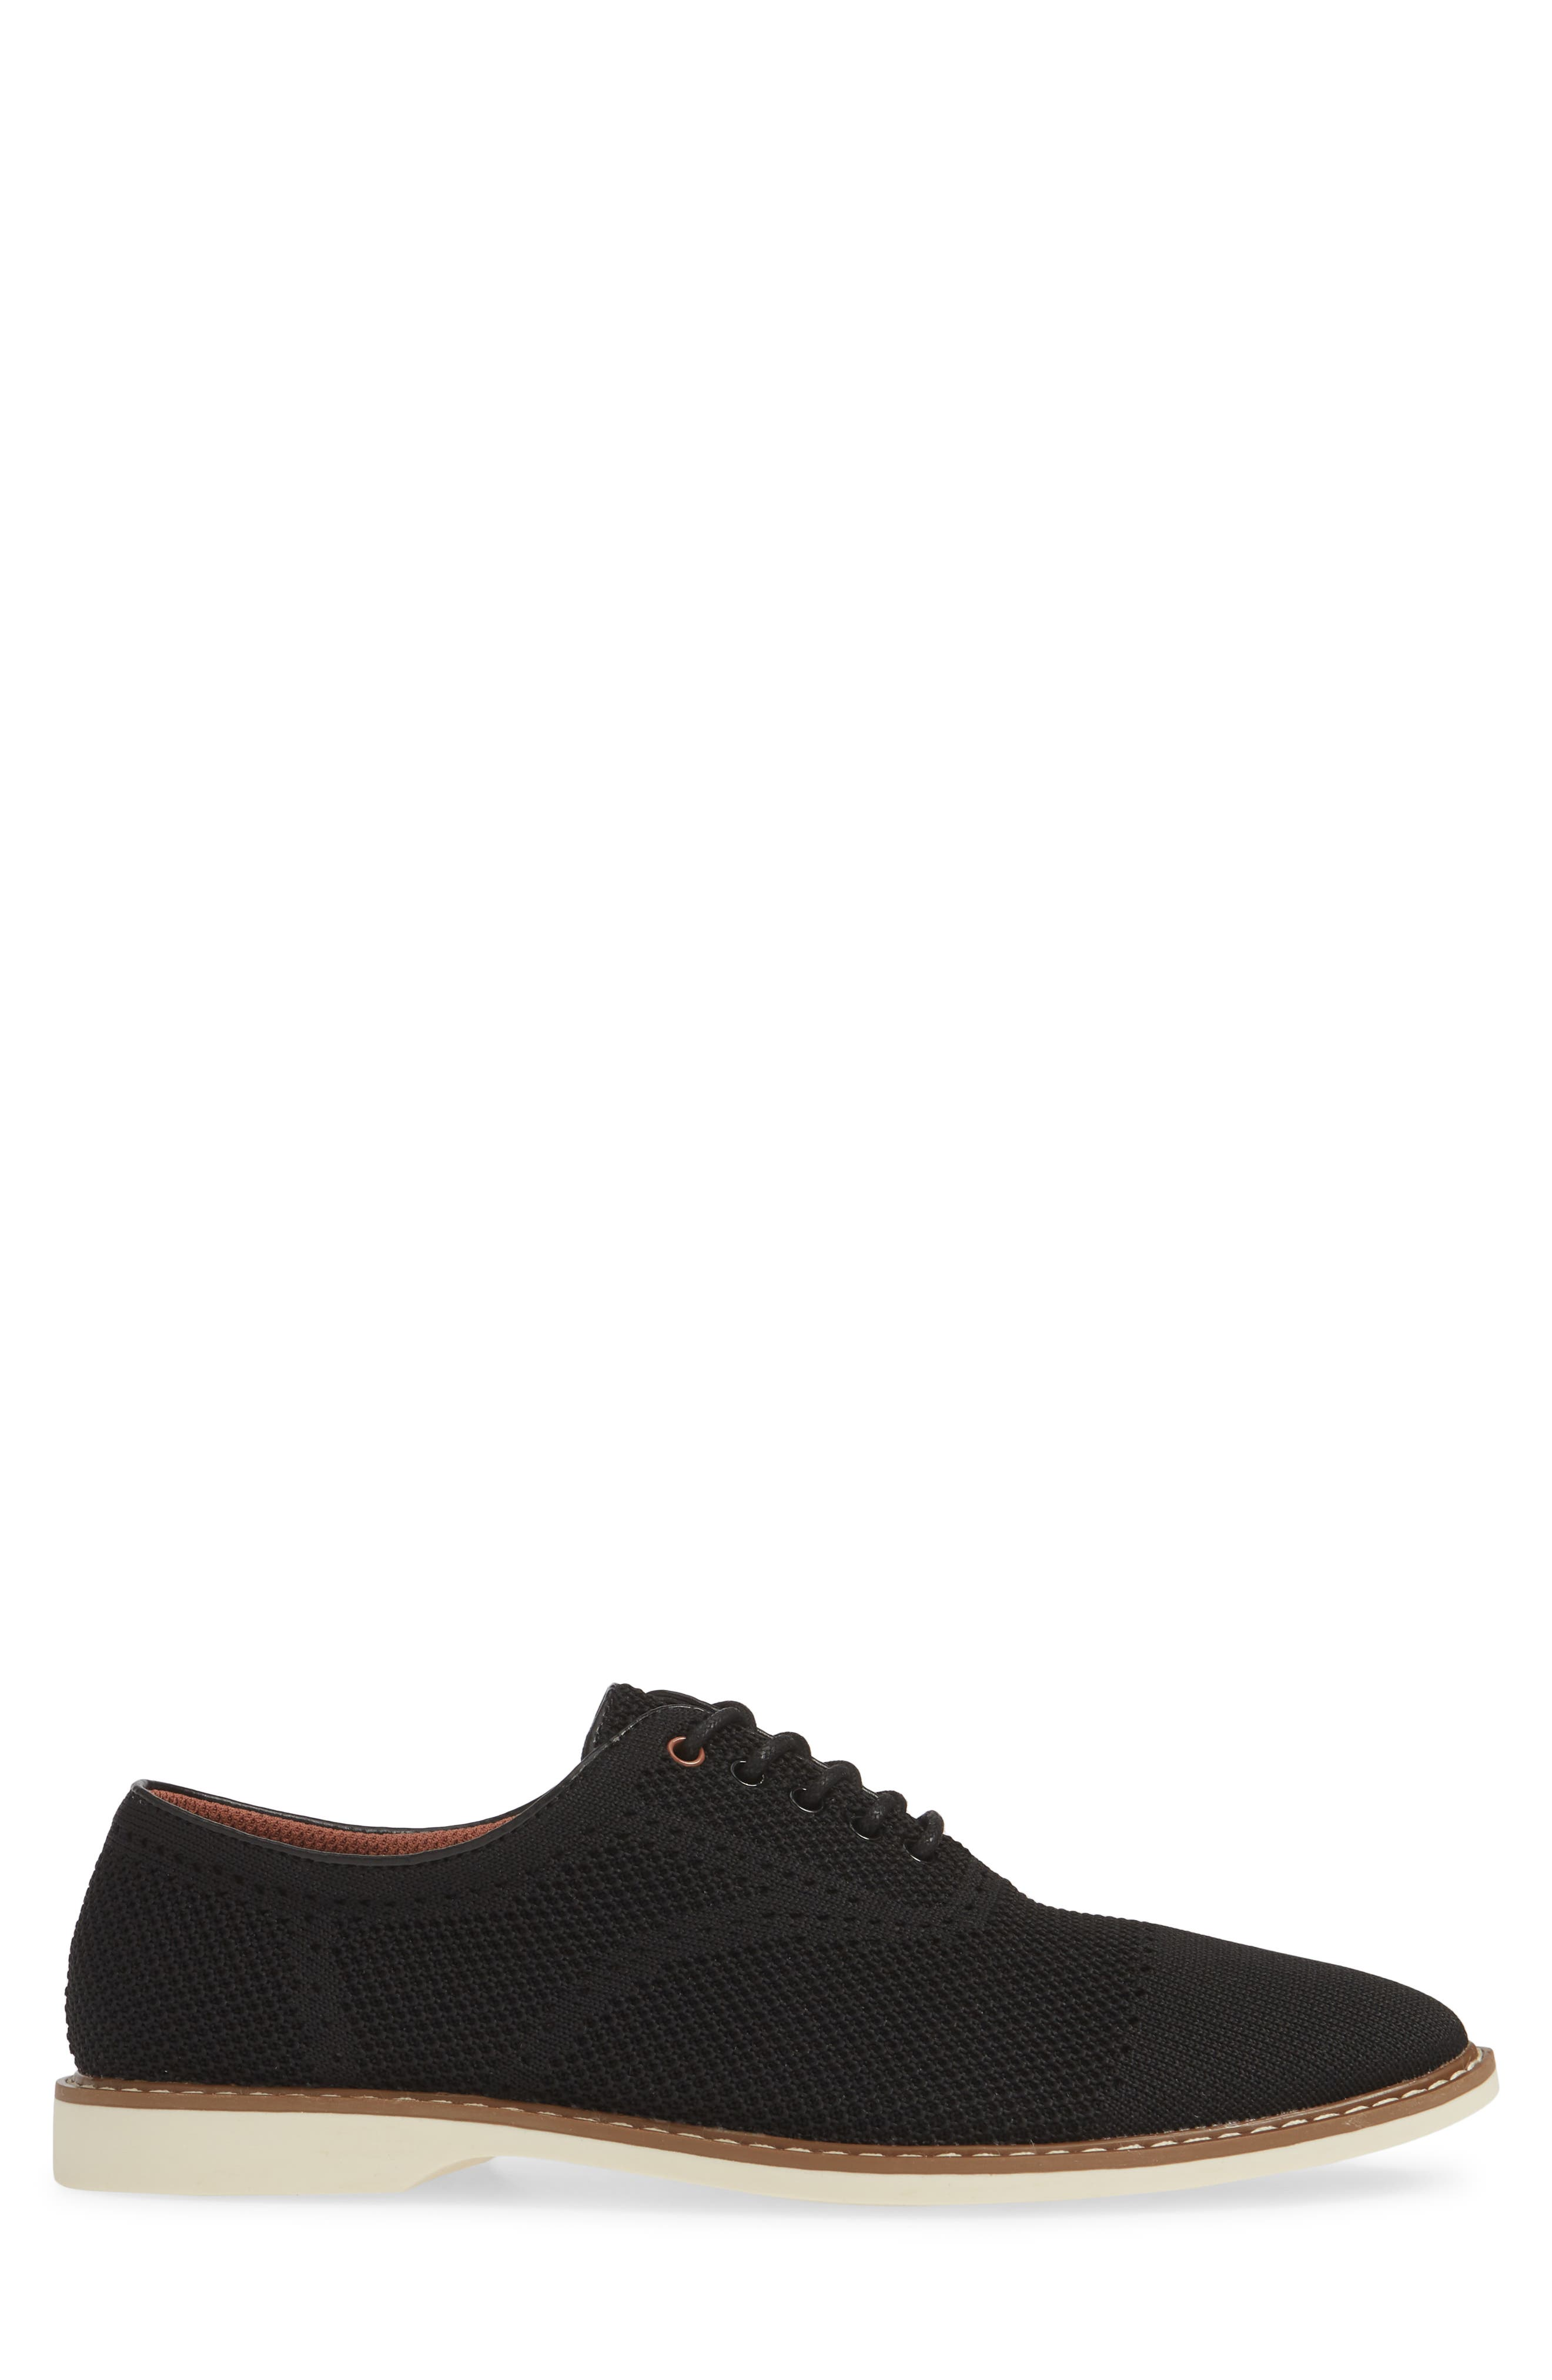 THE RAIL, Jared Plain Toe Oxford, Alternate thumbnail 3, color, BLACK